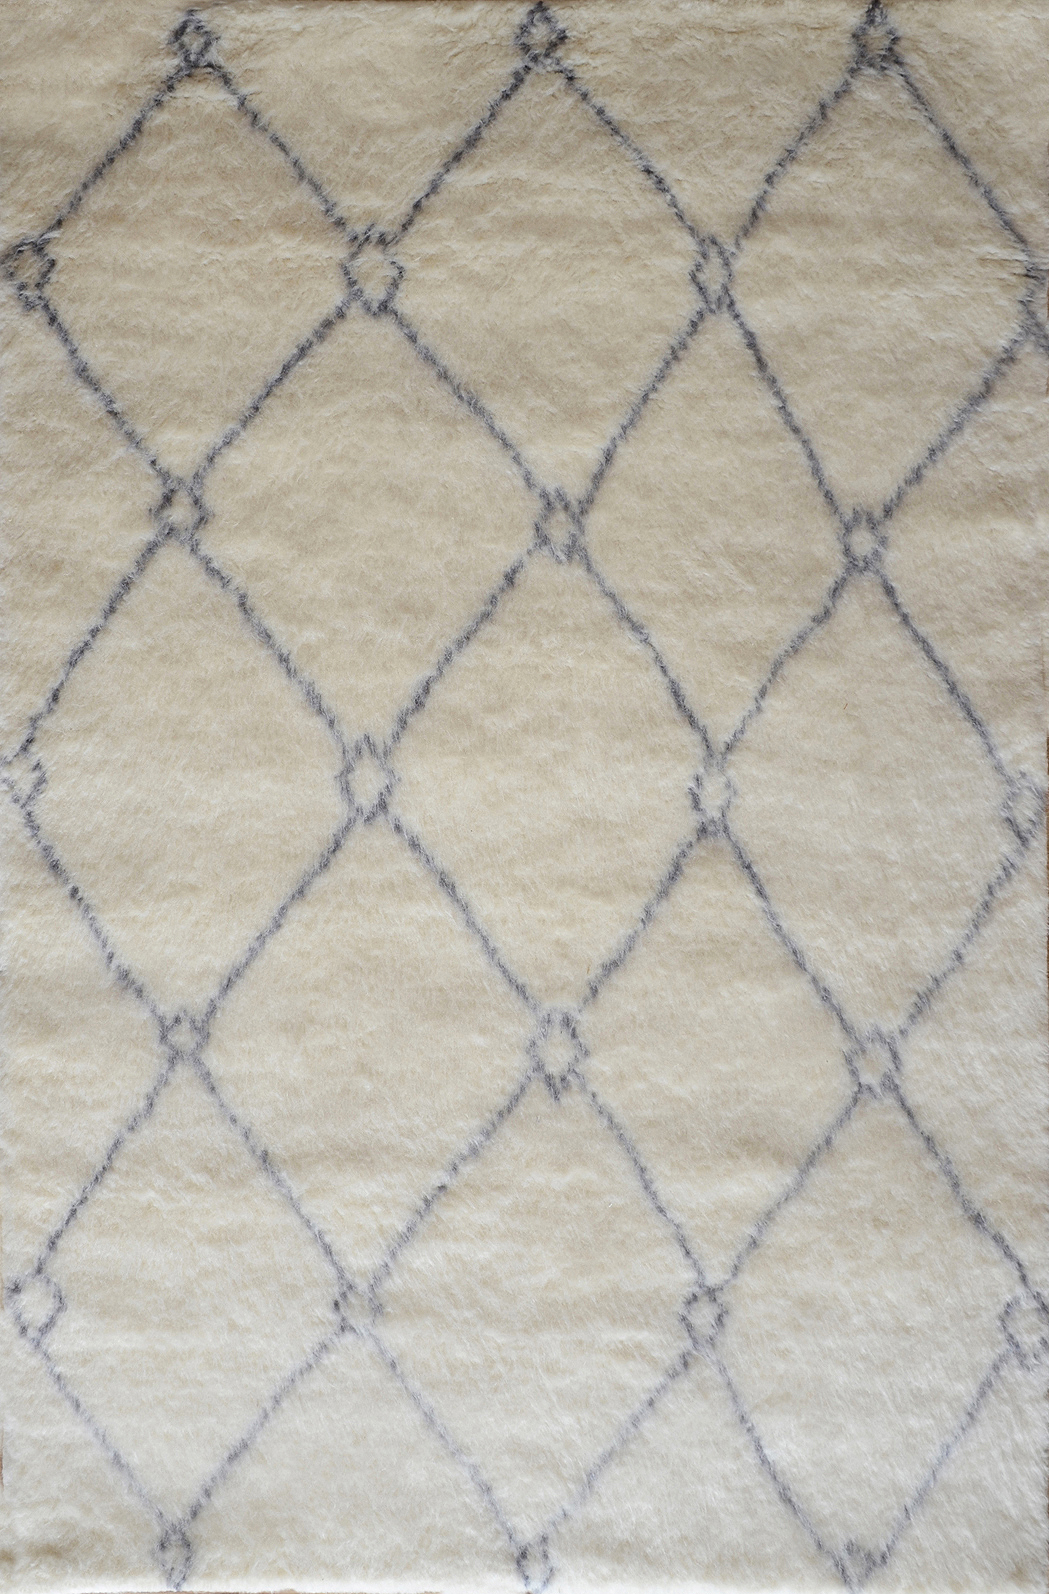 Moroccan Hand-Knotted Wool Rug (Colour: Ivory, Rug Size: 160 x 230)